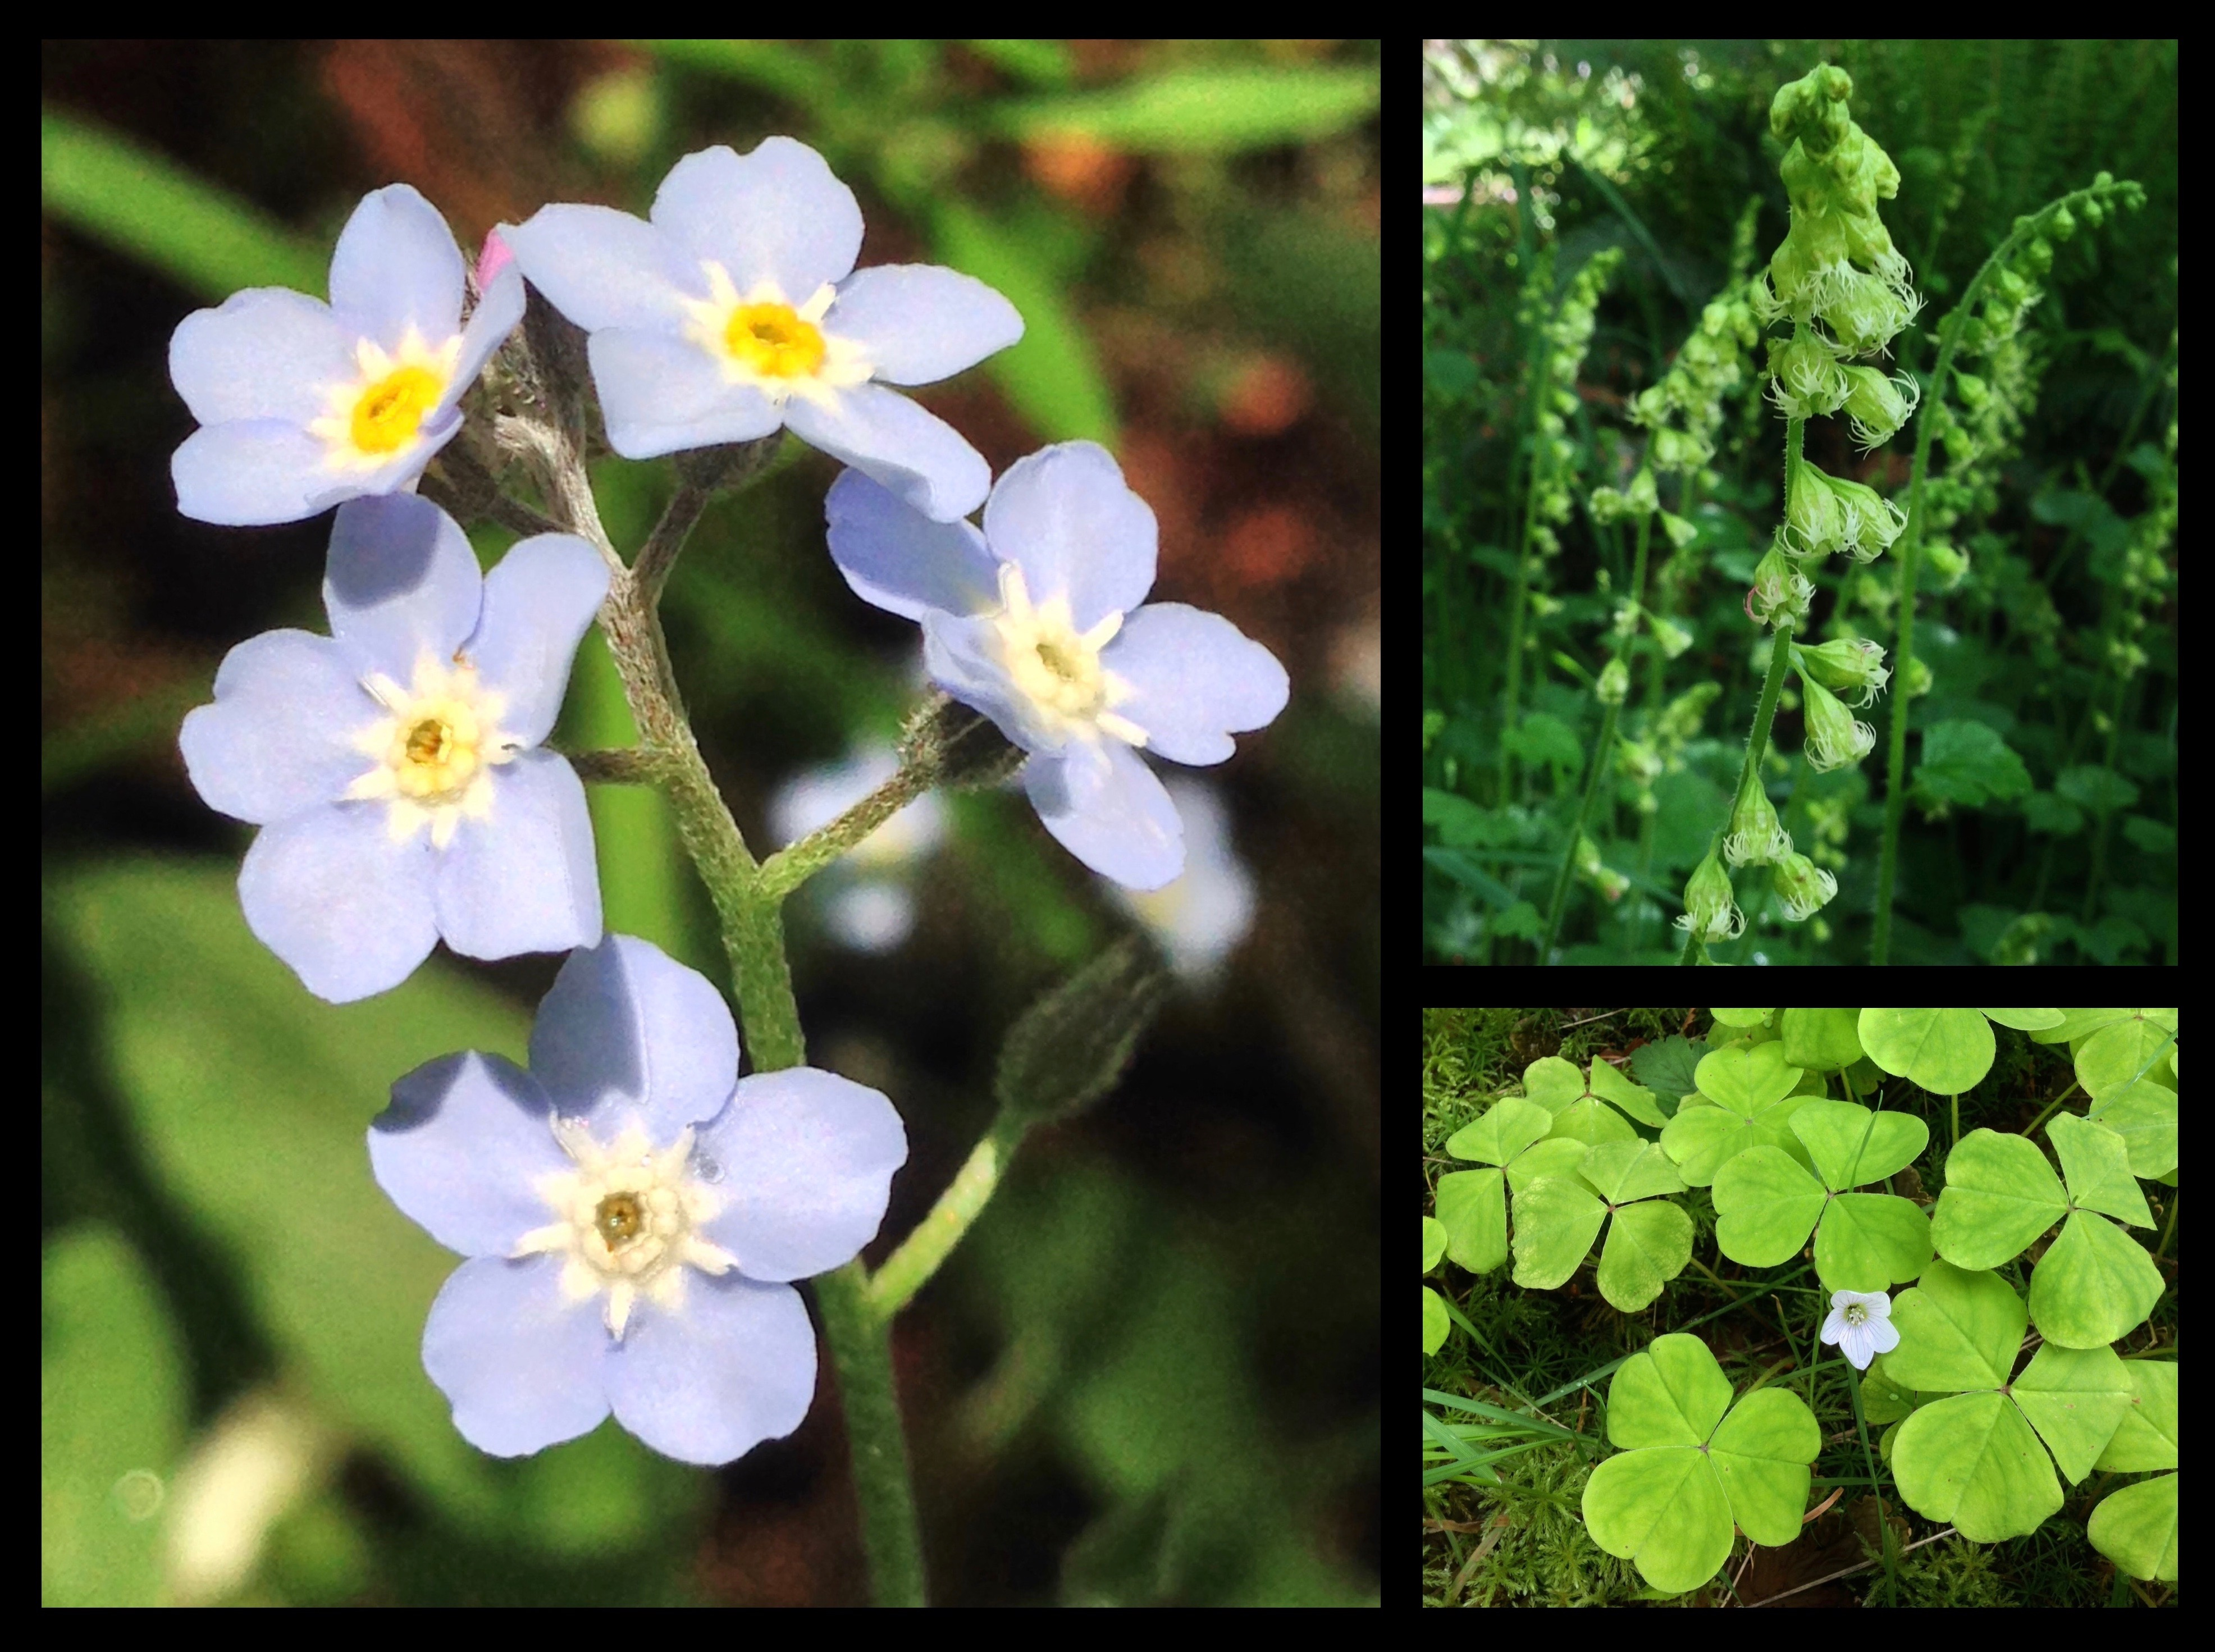 The riverine wayside hosts drifts of shade-loving wildflowers, including forget-me-nots (Myosotis scorpioides) (left), demurely nodding fringecups (Tellima grandiflora) (top right), and shamrock-like Oregon wood sorrels (Oxalis oregana) (lower right), which fold their pleated leaves downward like so many tiny umbrellas when struck by sunlight, quickly to reopen them when its scorching rays pass. Kloshe Nanitch Trail, May 19, 2014.